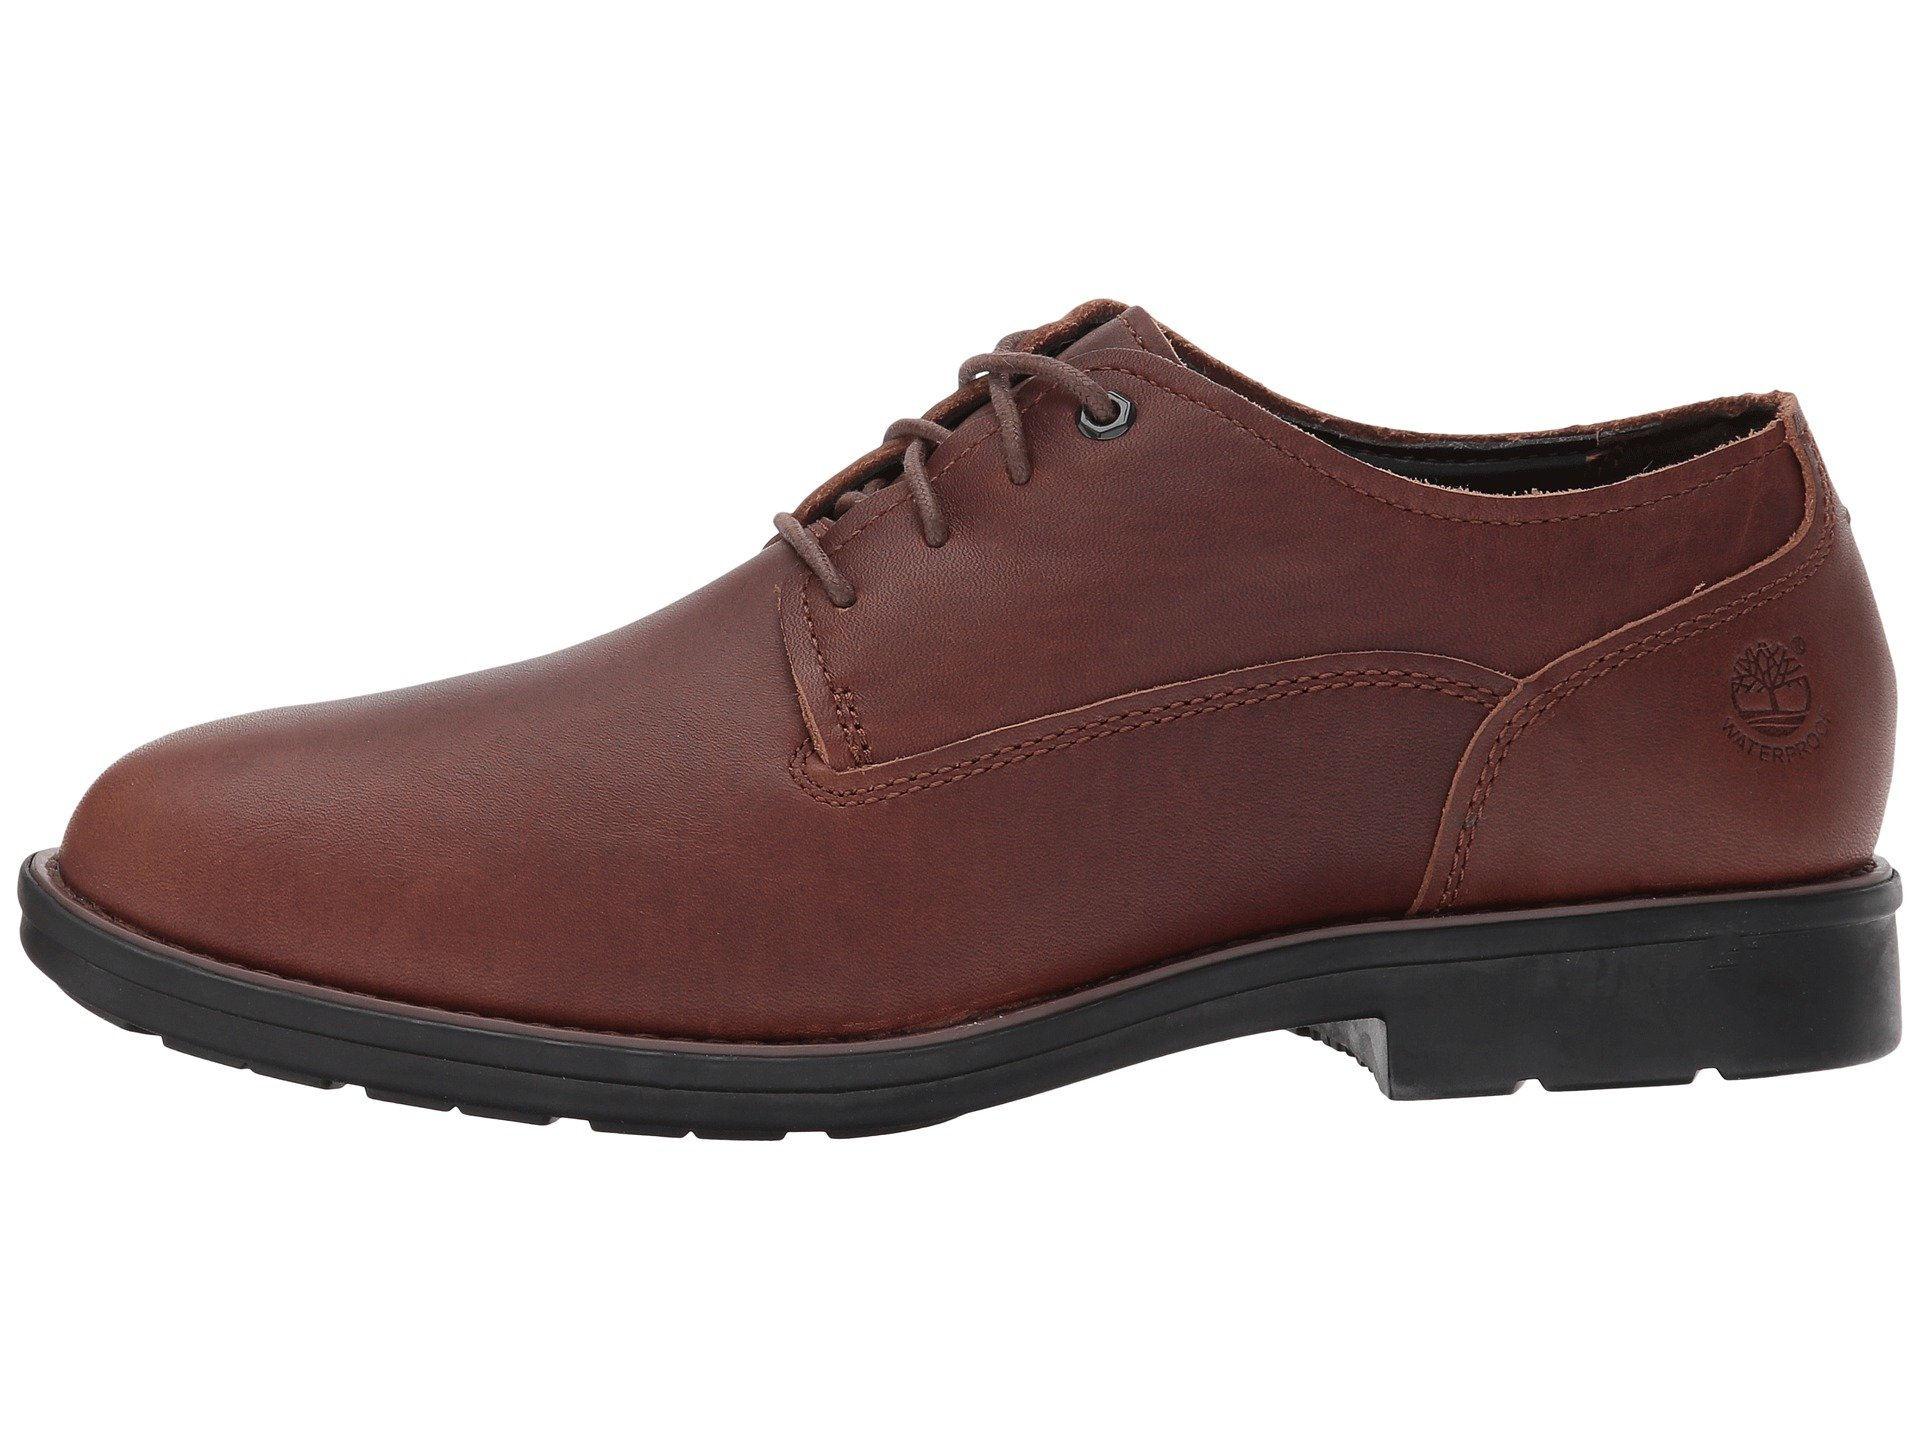 Timberland Men S Leather Oxford Shoes Dark Brown